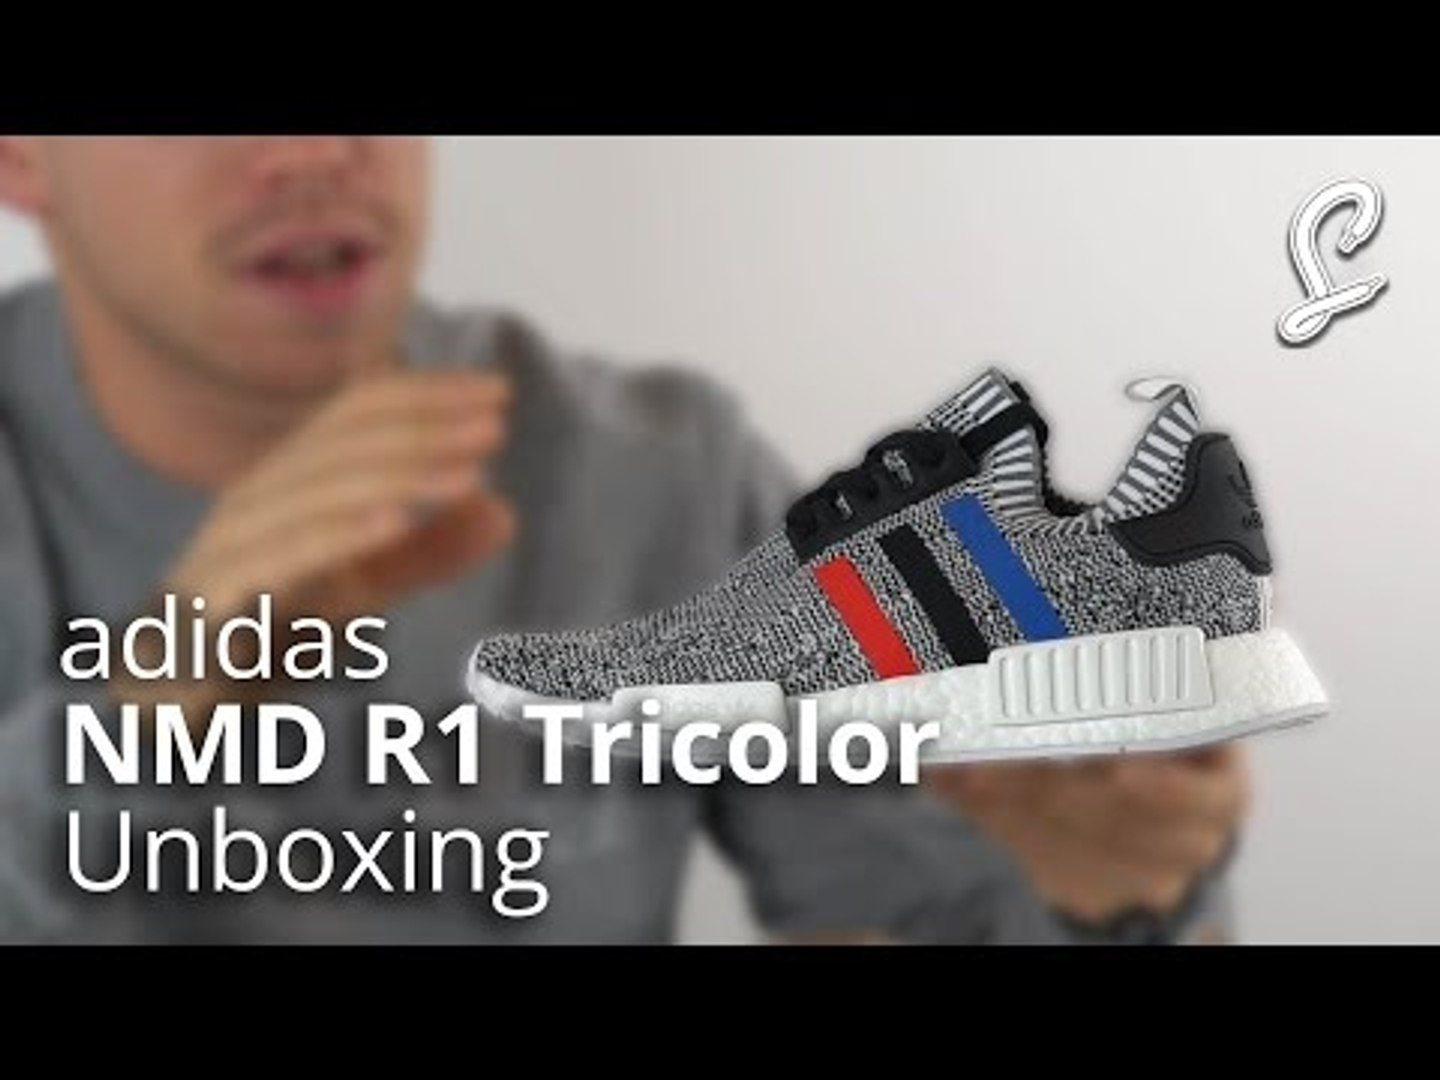 adidas NMD R1 Tricolour Unboxing & Review   Grey Primeknit